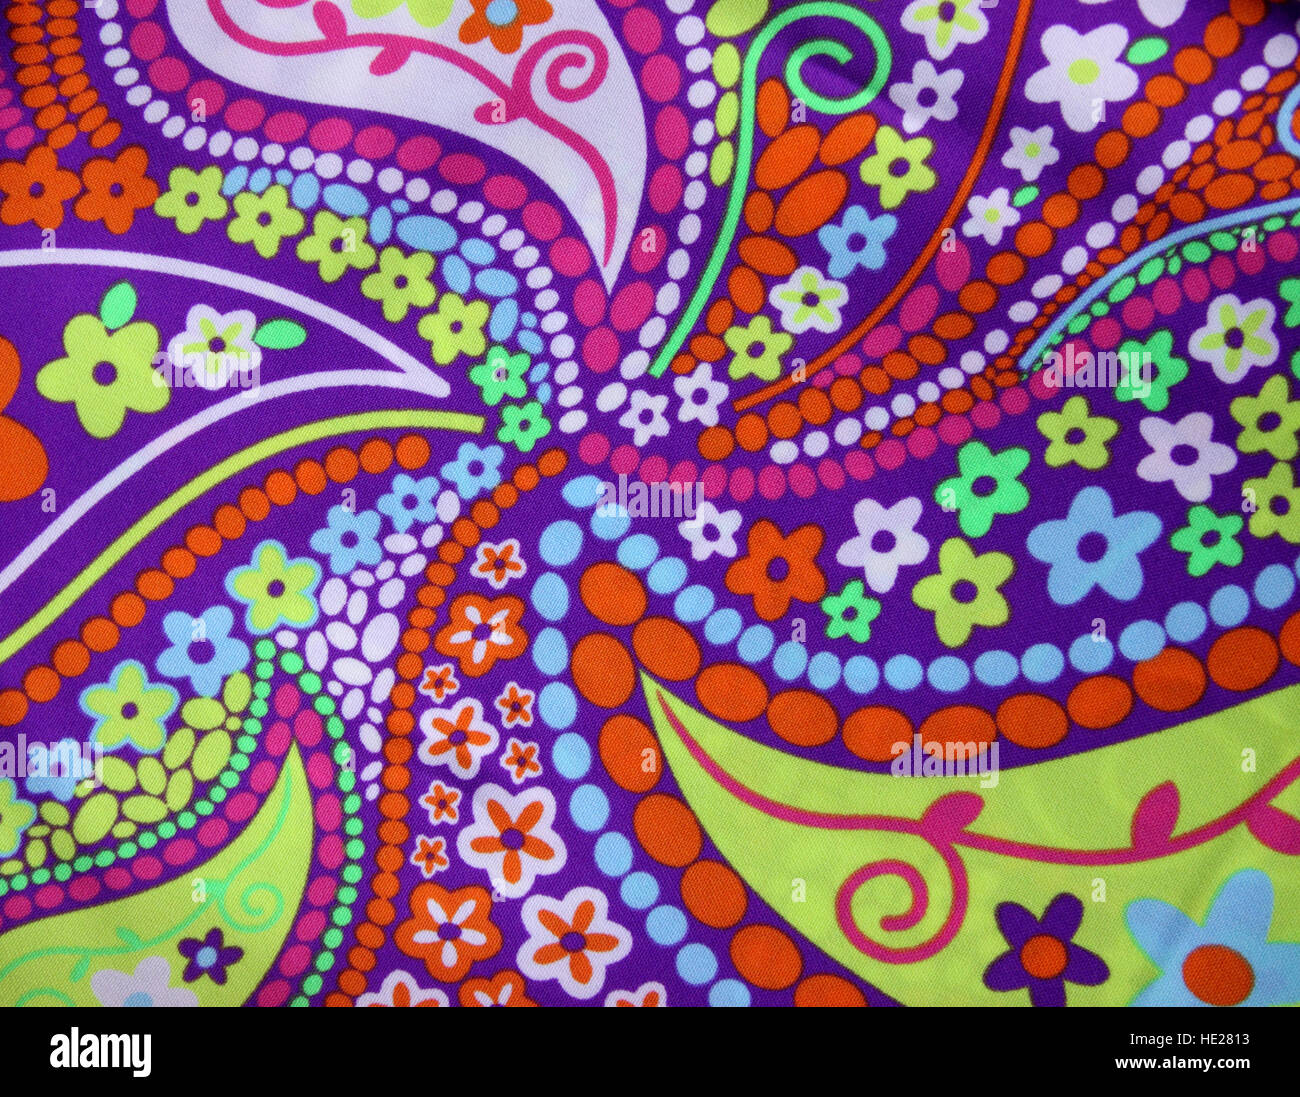 Psychedelic pattern on fabric, from the 1960's or 1970's - Stock Image